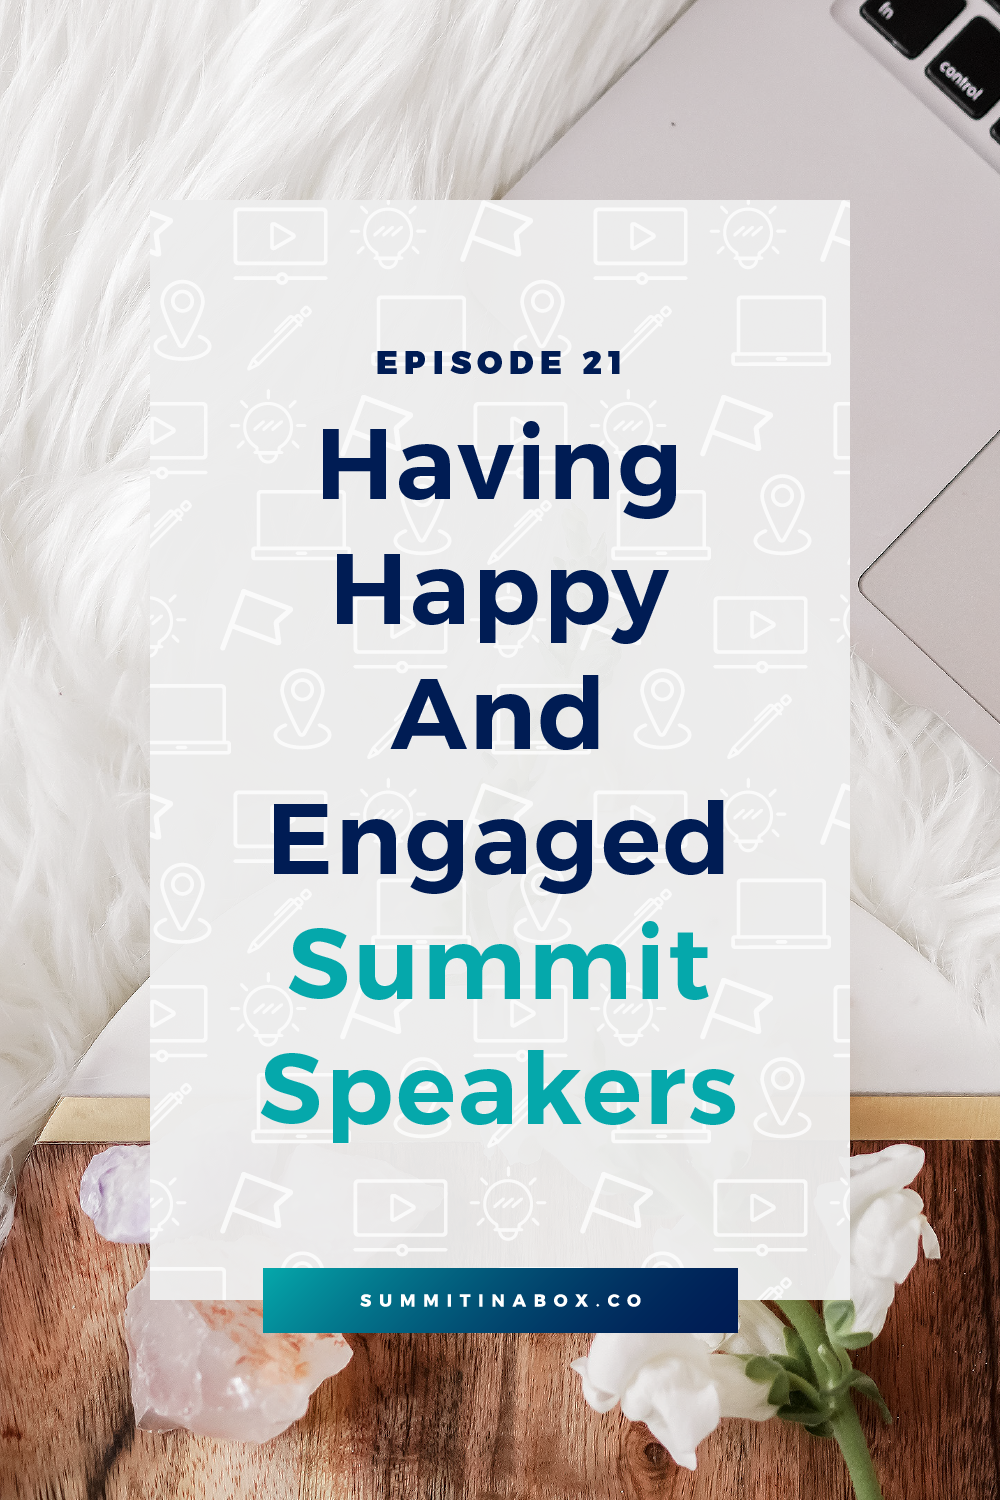 The more engaged your speakers are the better results you'll see. Here's how to have happy and engaged virtual summit speakers.